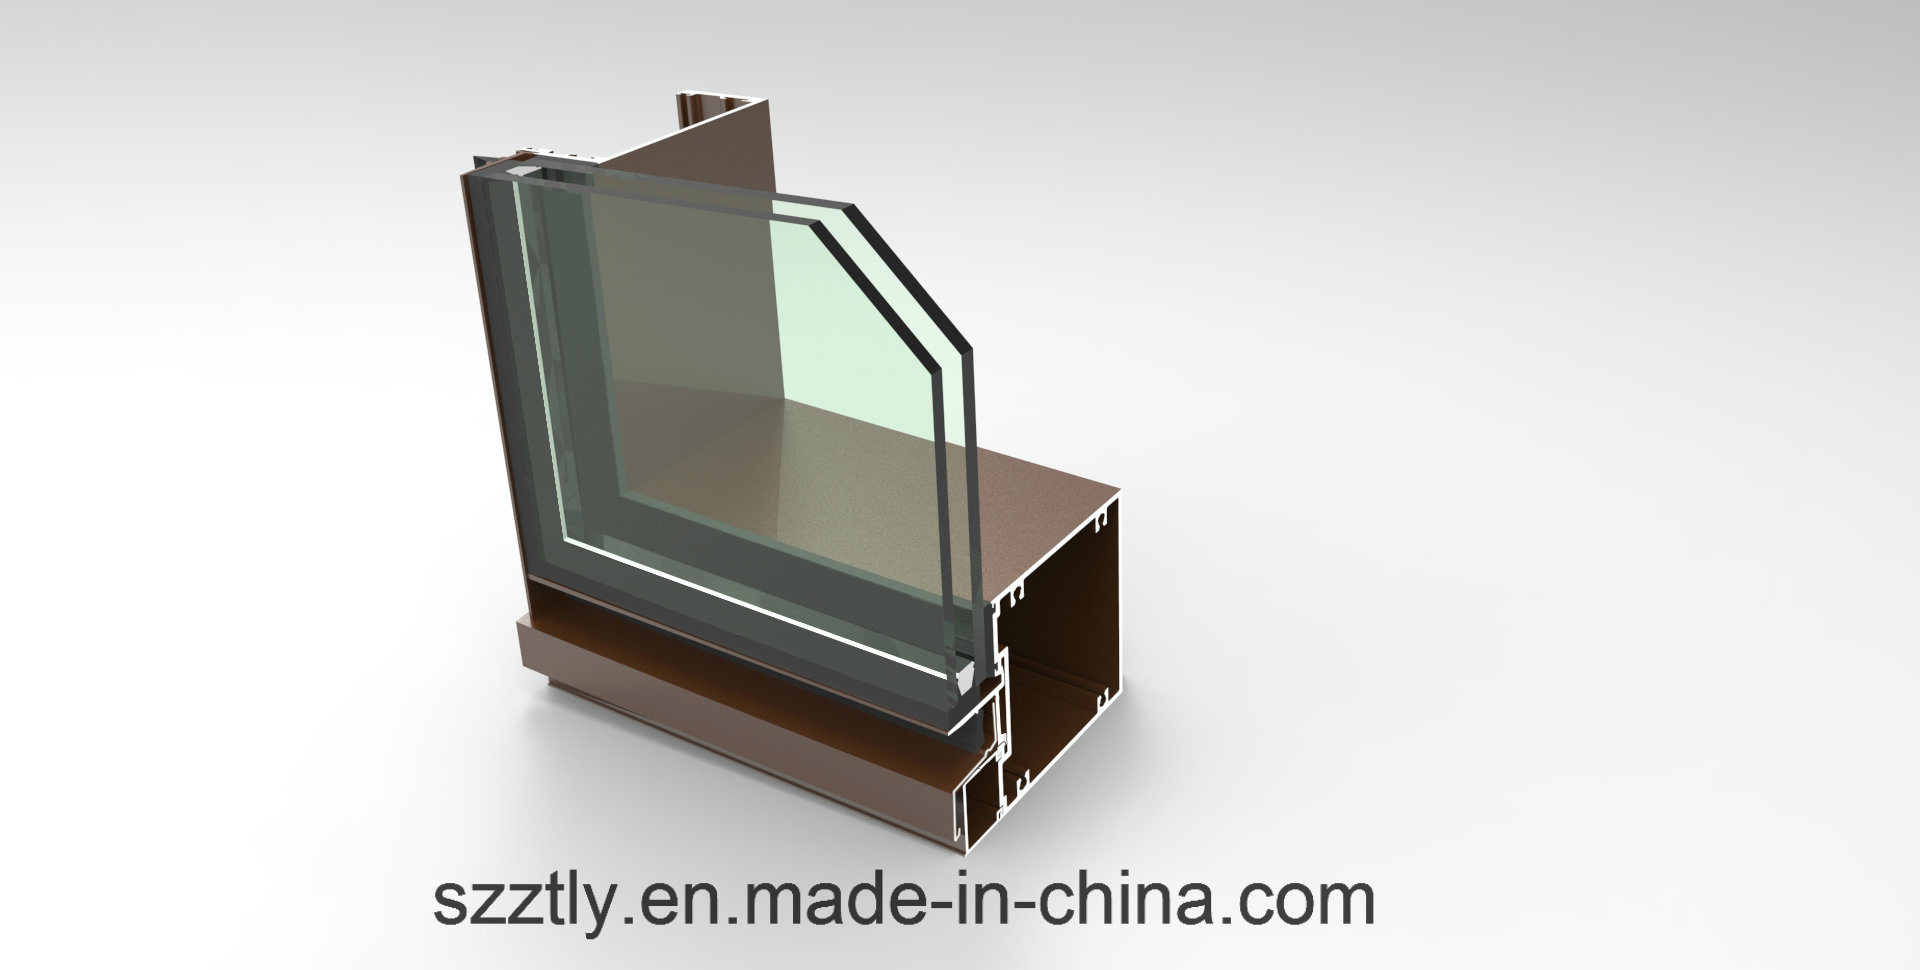 Customized Optional Colored Aluminum Extrusion Parts for Windows/Doors/Chairs/Curtain Wall Profile